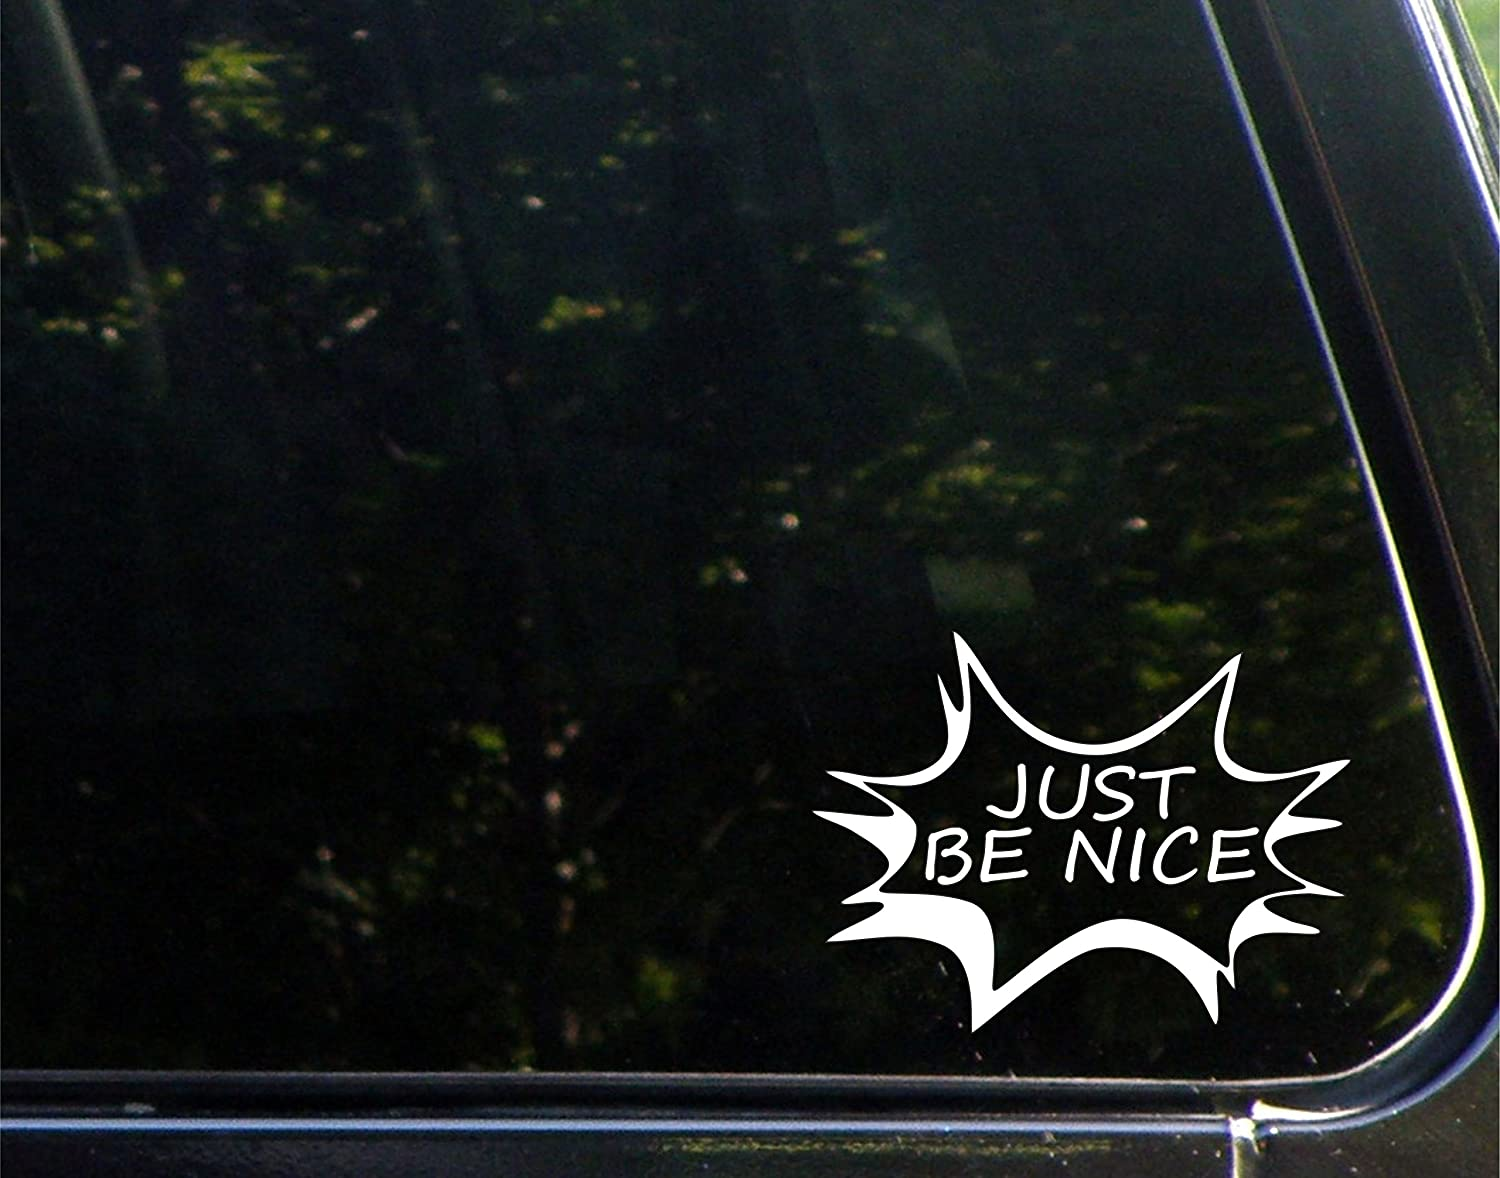 "Just Be Nice! - 8-3/4"" x 3-1/2"" - Vinyl Die Cut Decal/Bumper Sticker for Windows, Cars, Trucks, Laptops, Etc."